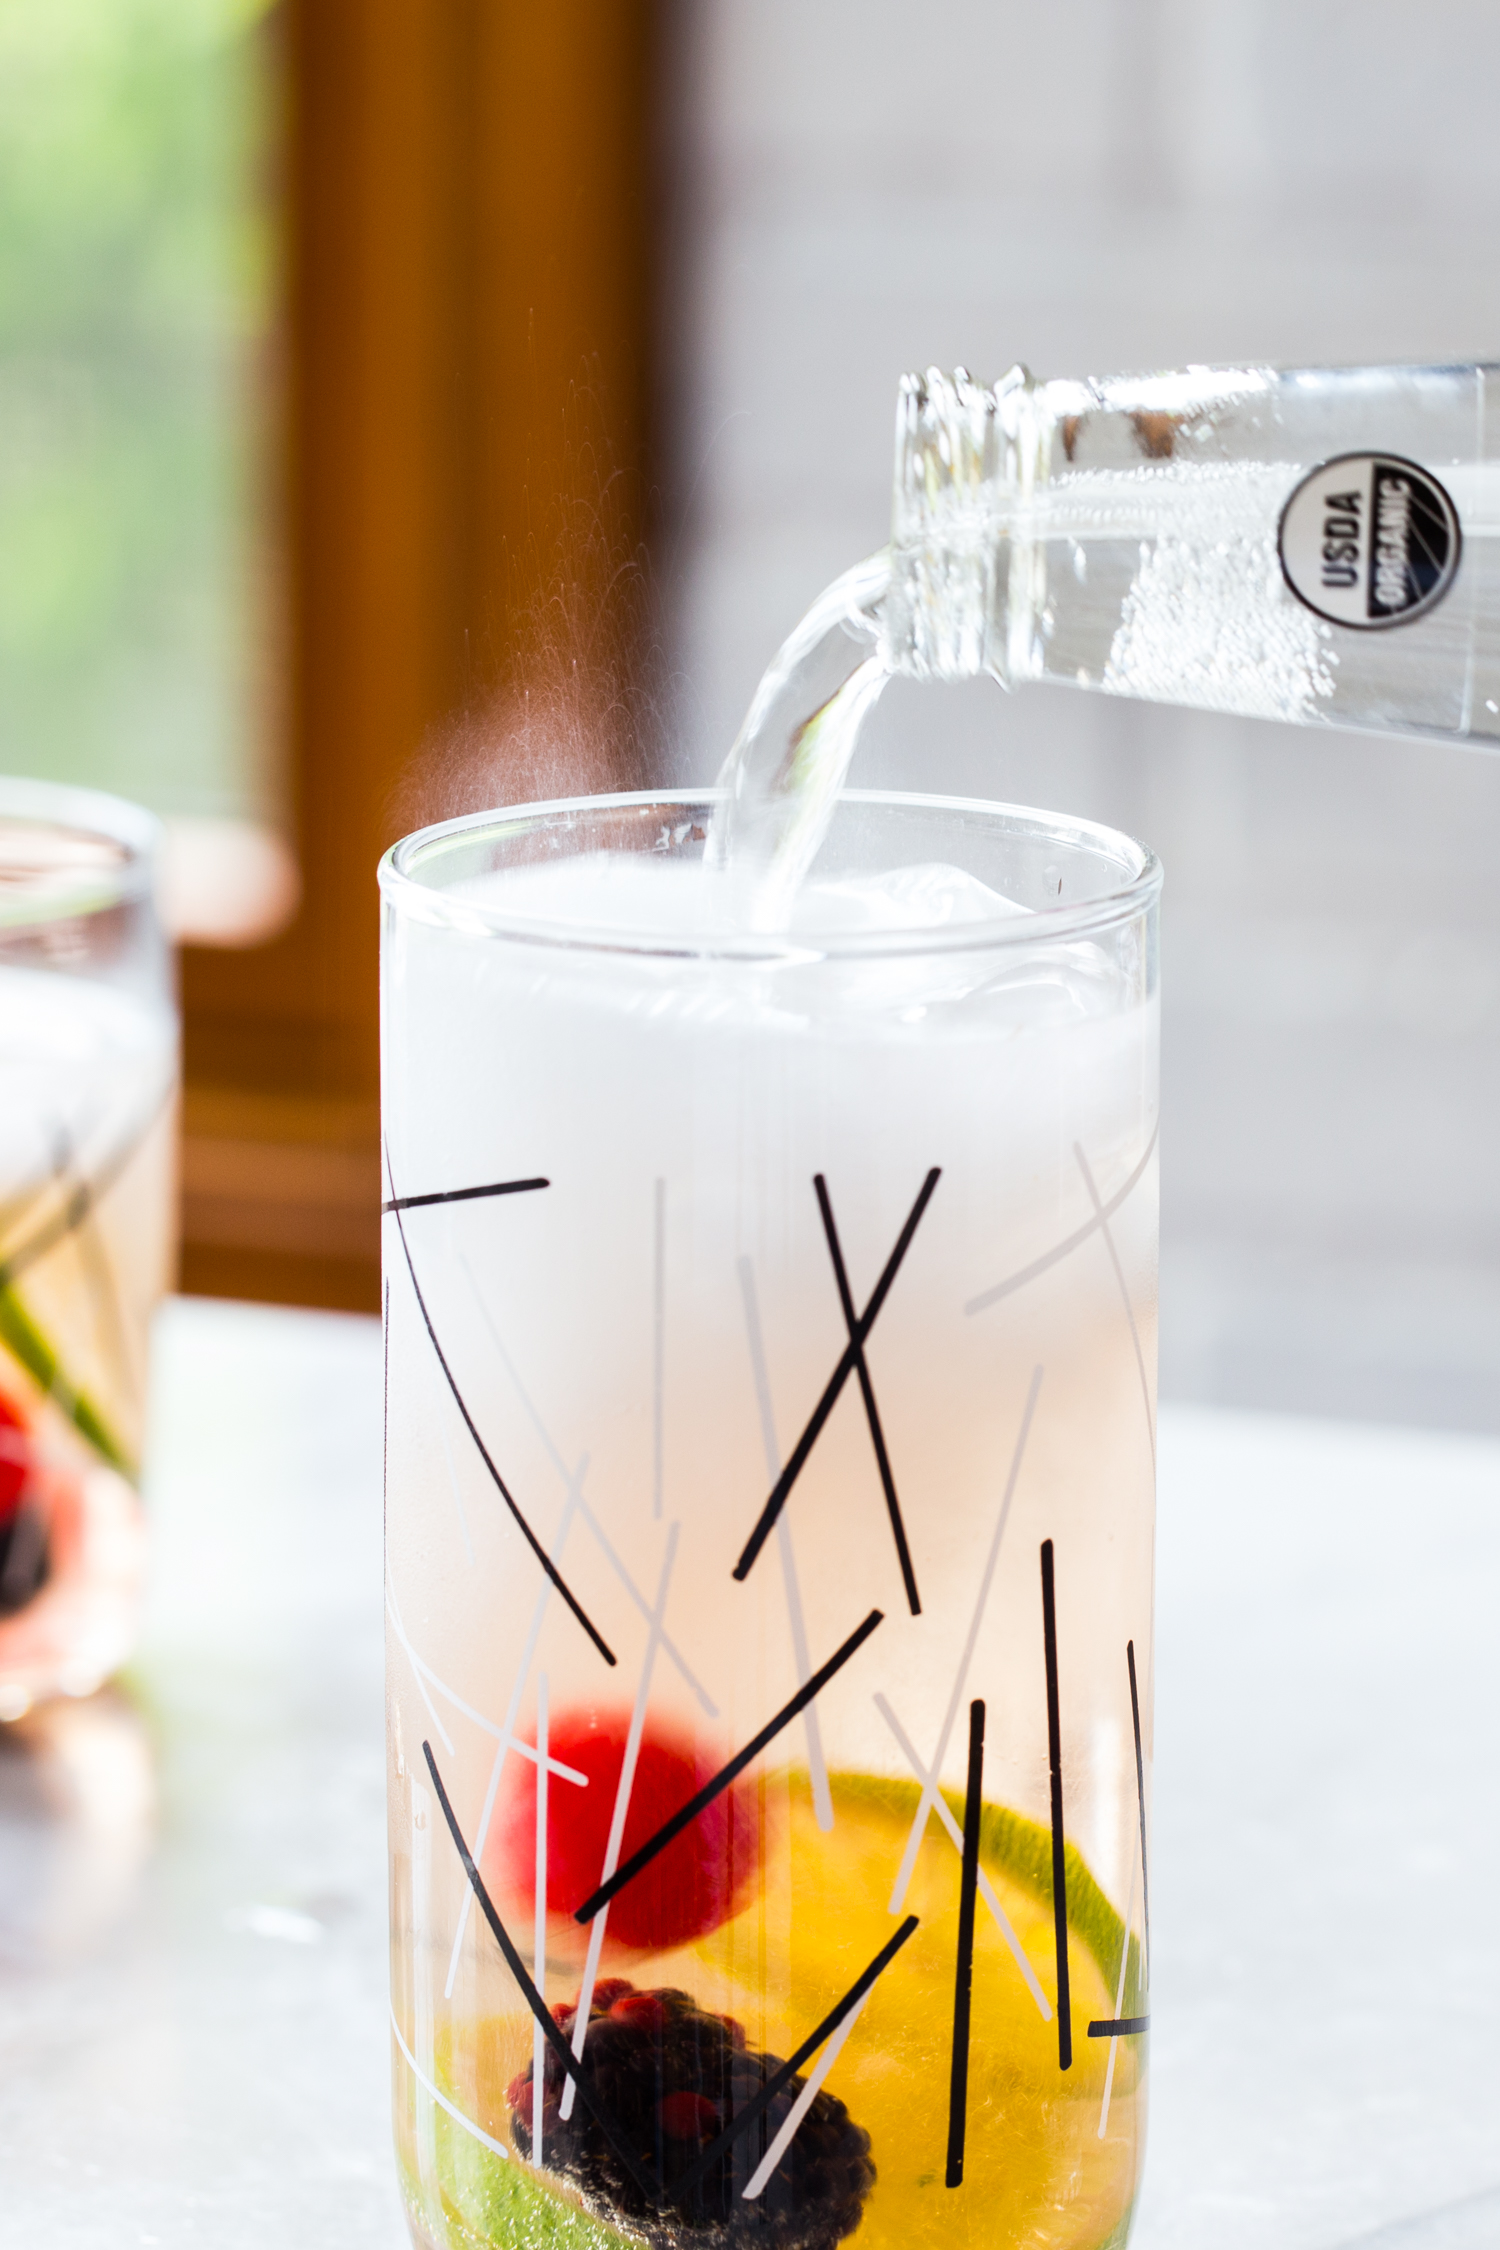 Sparkling Berry Sangria is just about the most refreshing summer drink you can make <3